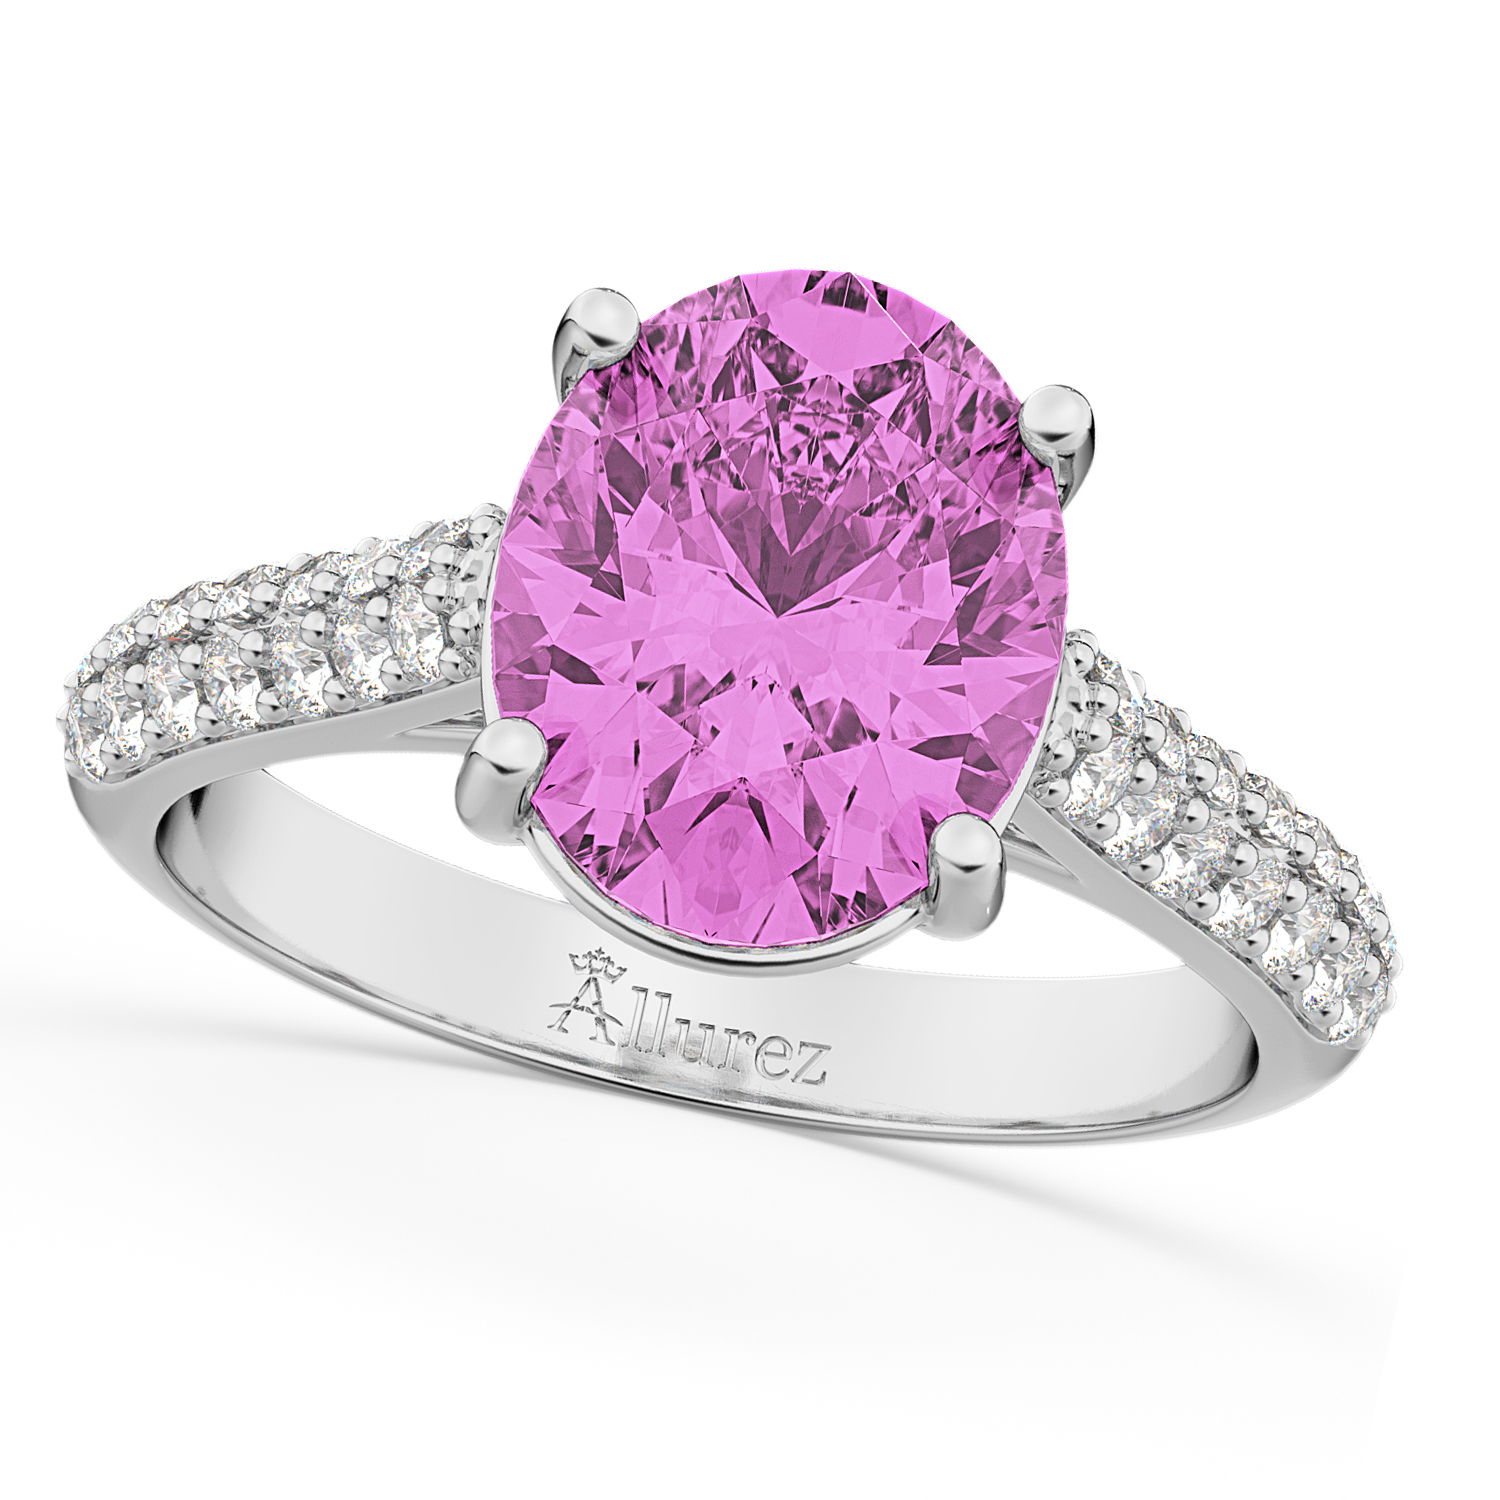 Oval Pink Sapphire & Diamond Engagement Ring 18k White Gold 4.42ct